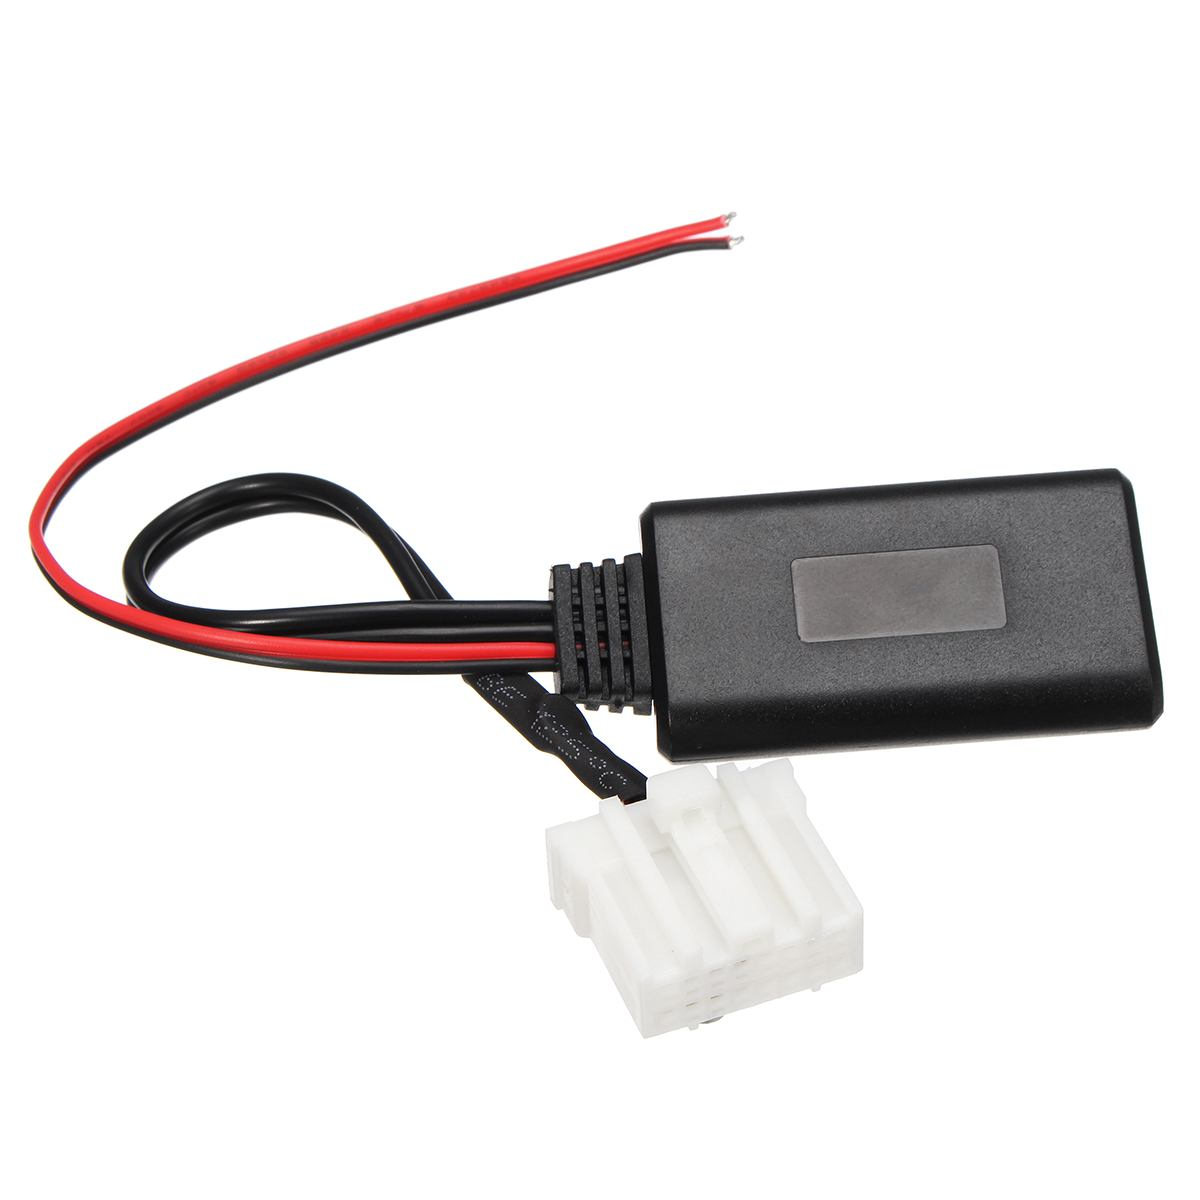 Car for <font><b>bluetooth</b></font> Module Audio Aux Adapter Cable For <font><b>Mazda</b></font> 3 <font><b>6</b></font> B70 MX5 RX8 2006+ Car Electronics Accessories image